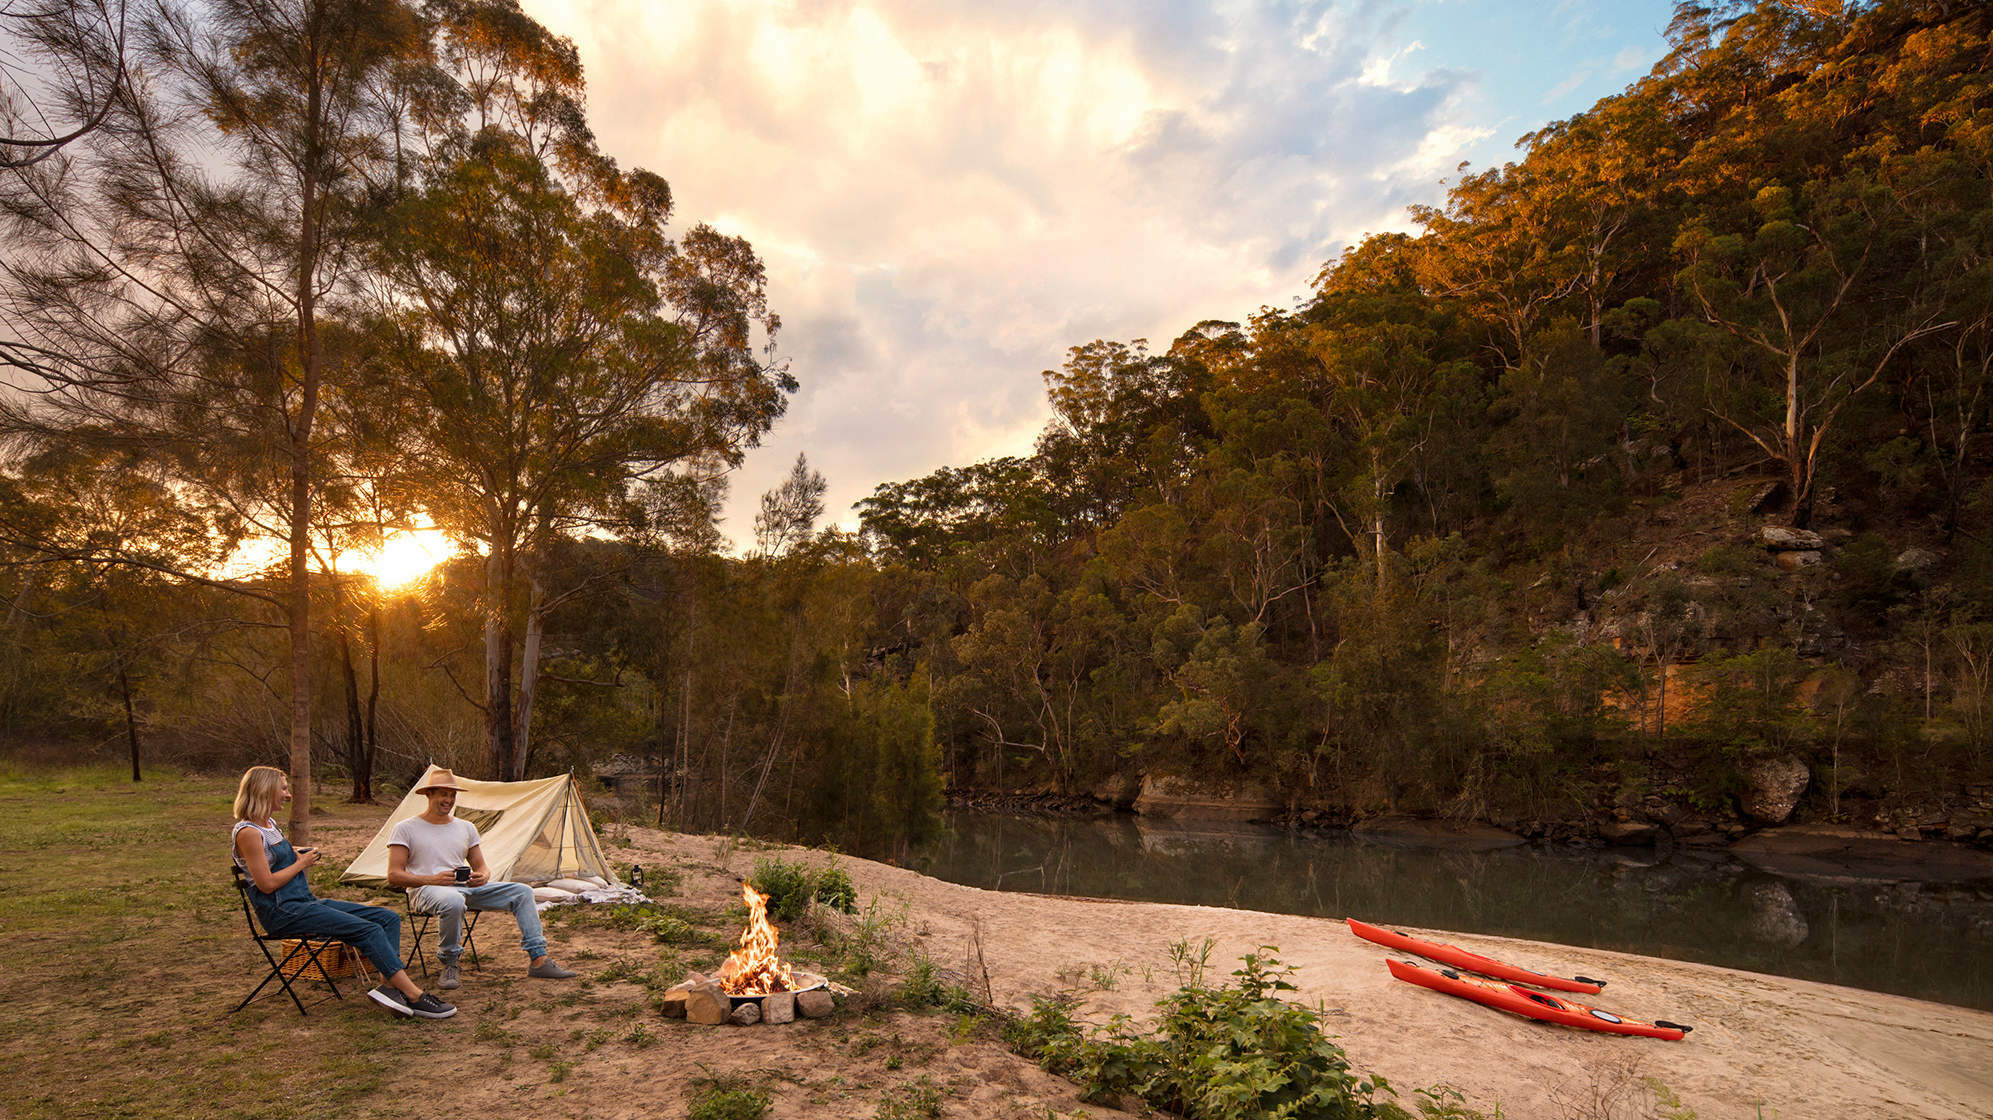 The best places to go camping near Sydney this autumn